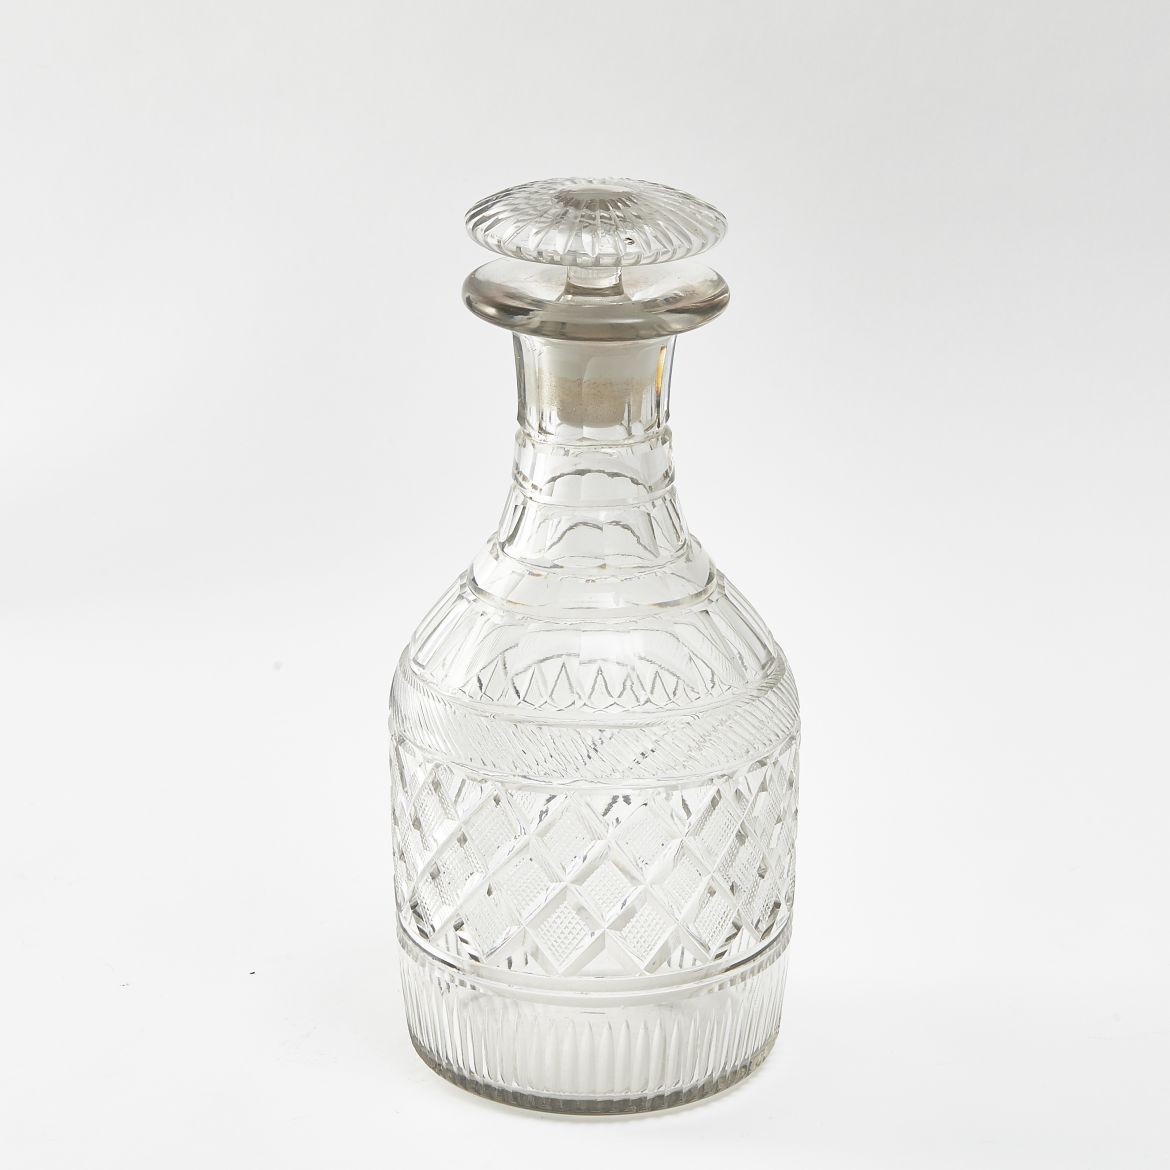 Regency Mallet Shaped Decanter